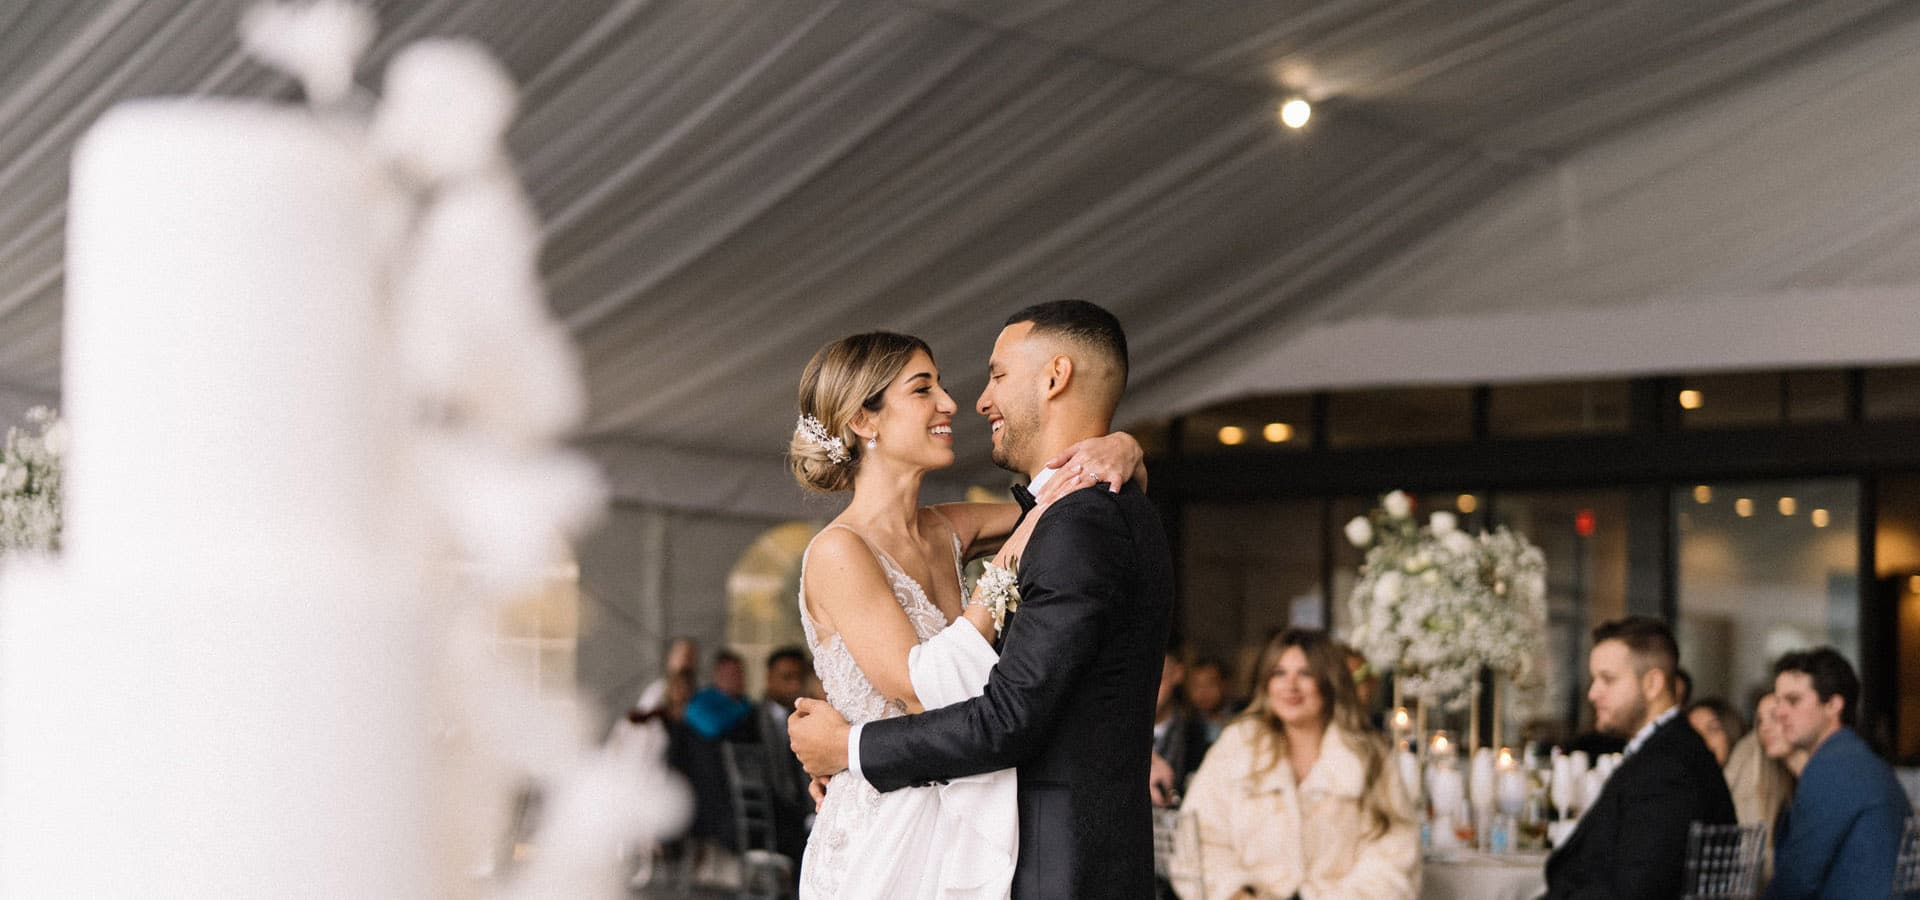 Hero image for 6 Ways to Make your Micro-Wedding Memorable for You and Your Guests